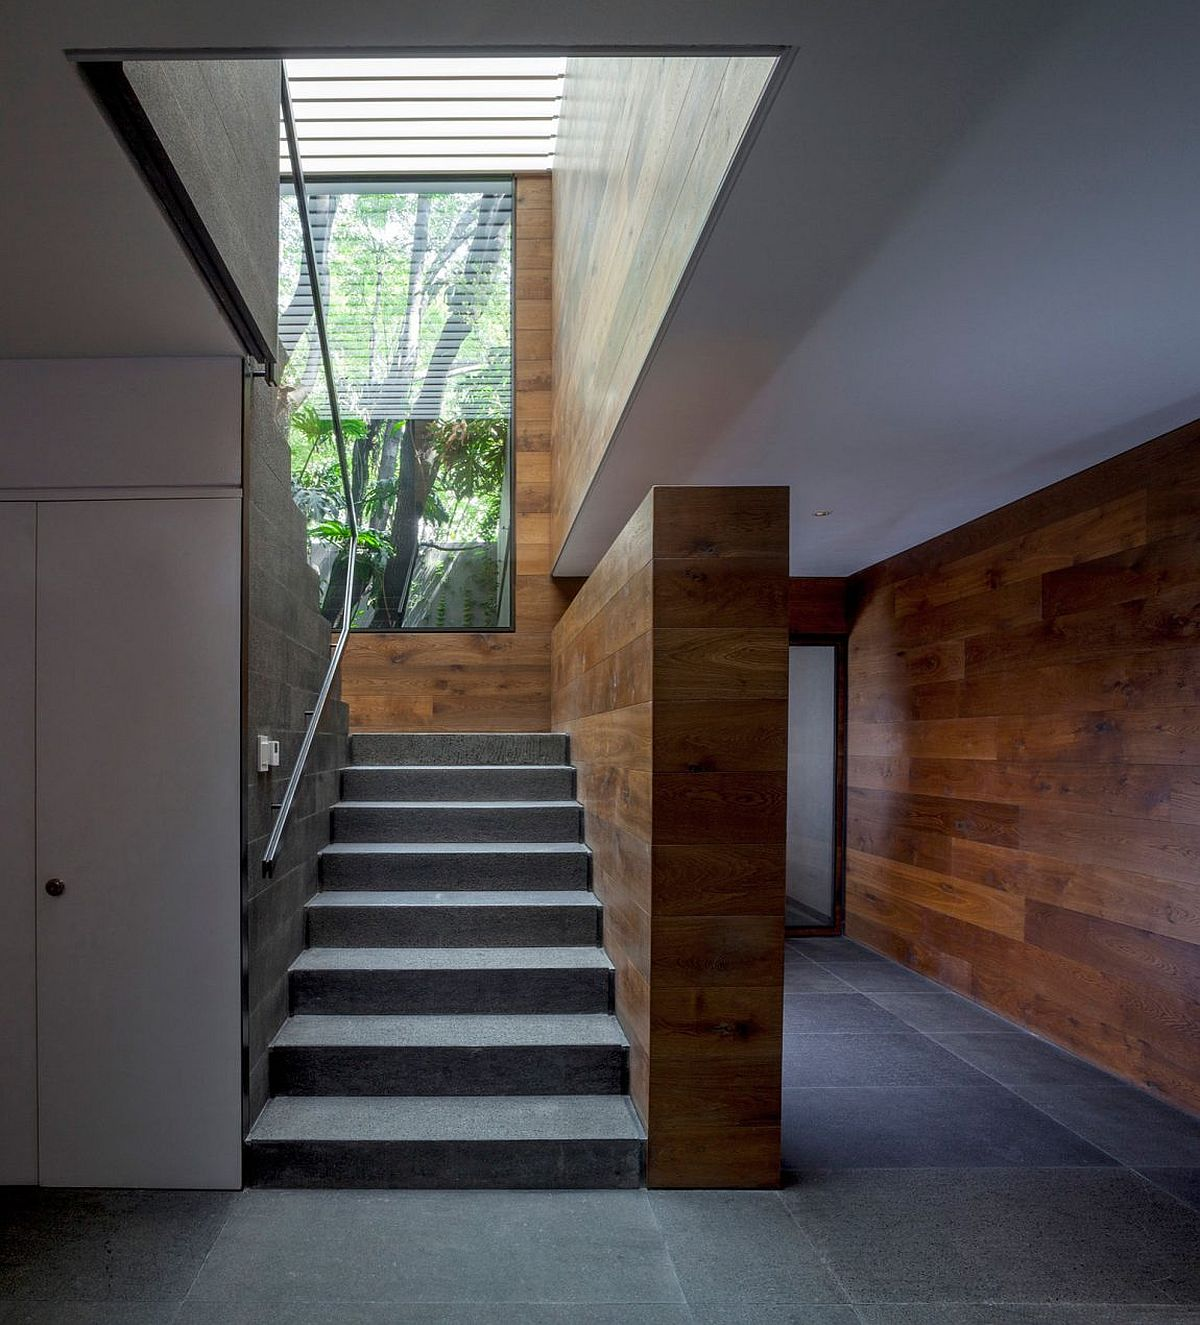 Stairwell of the home also ushers in natural light